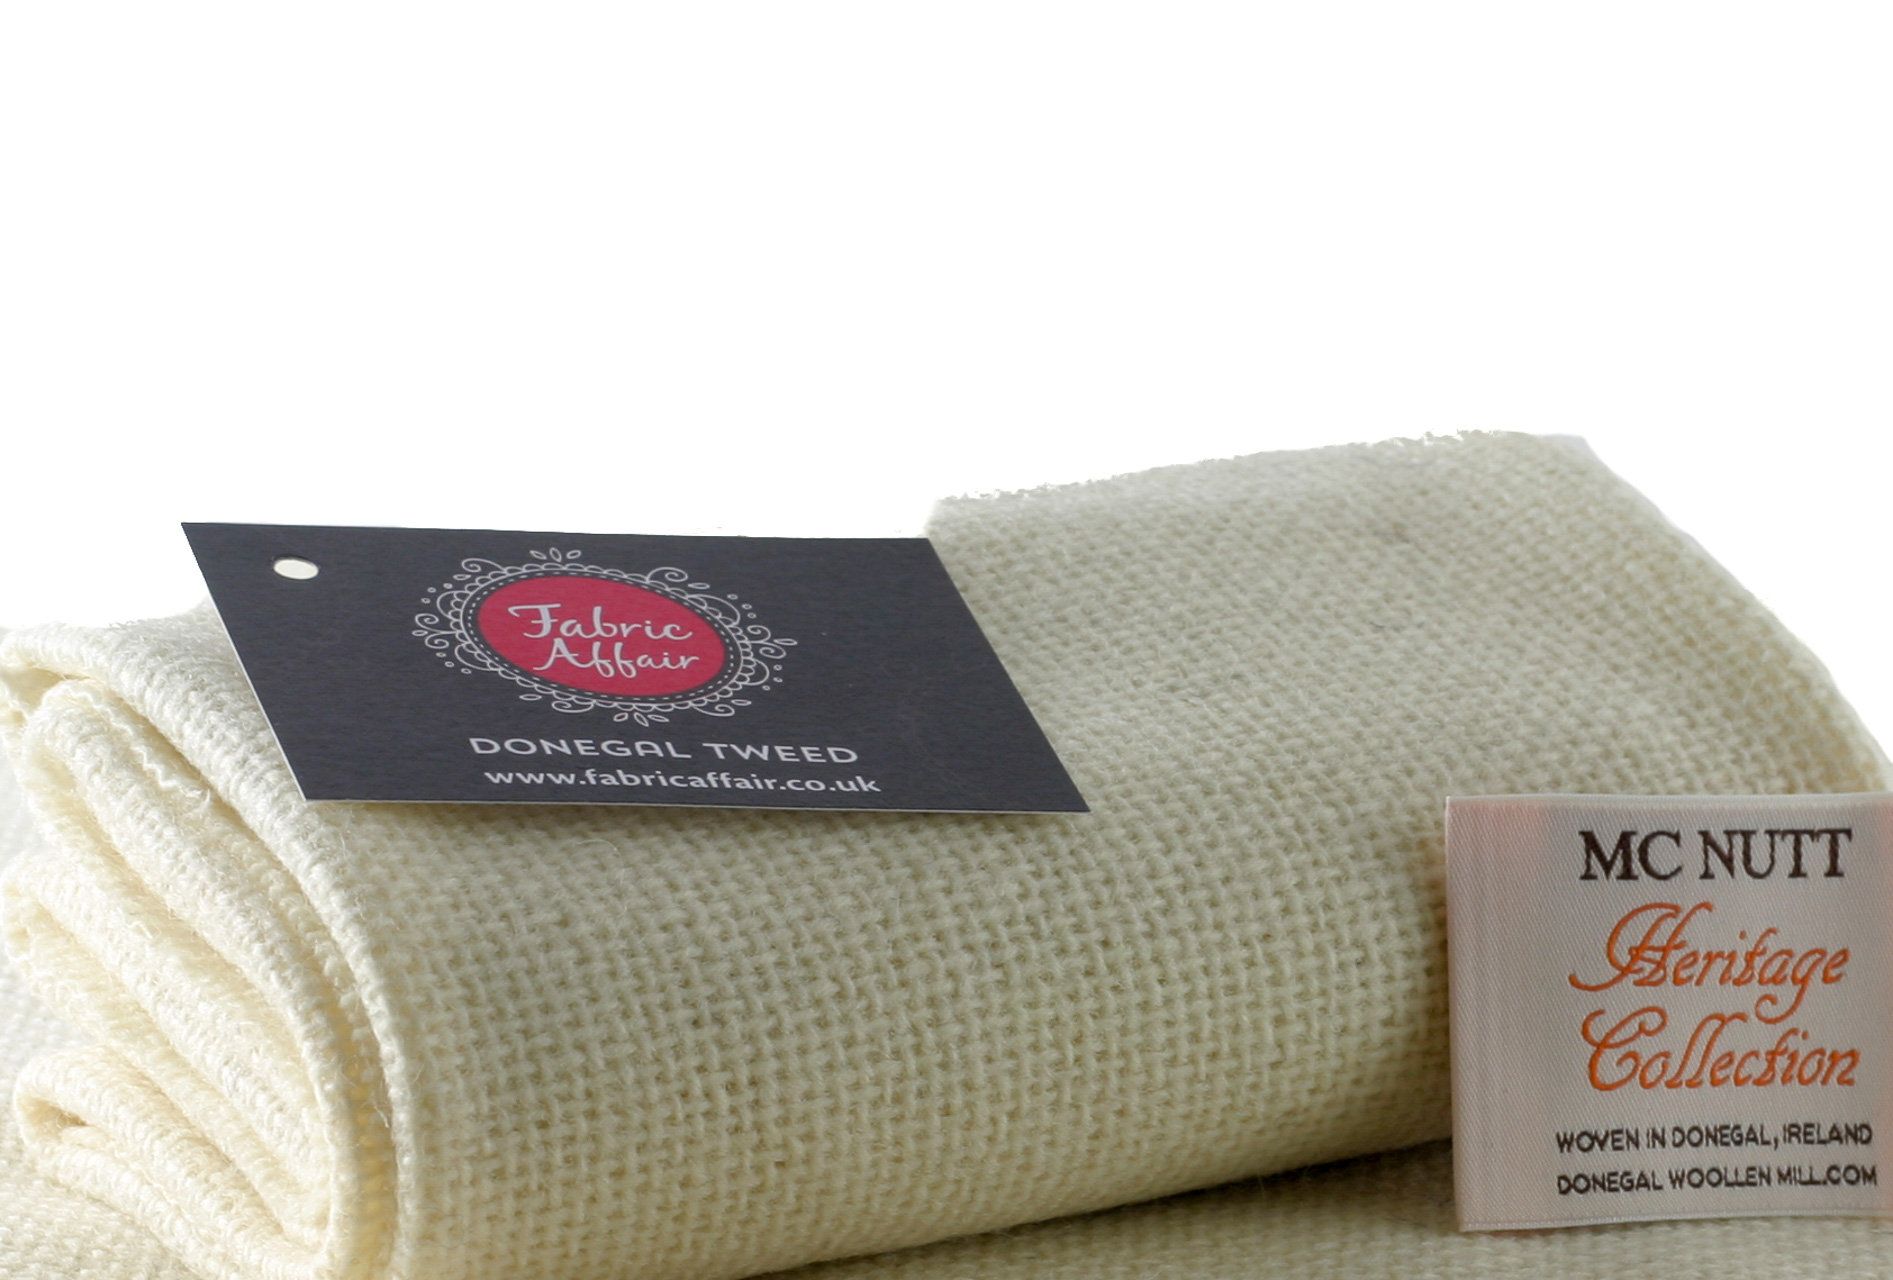 Donegal Tweed by Fabric Affair: Heritage Collection, Bainin.